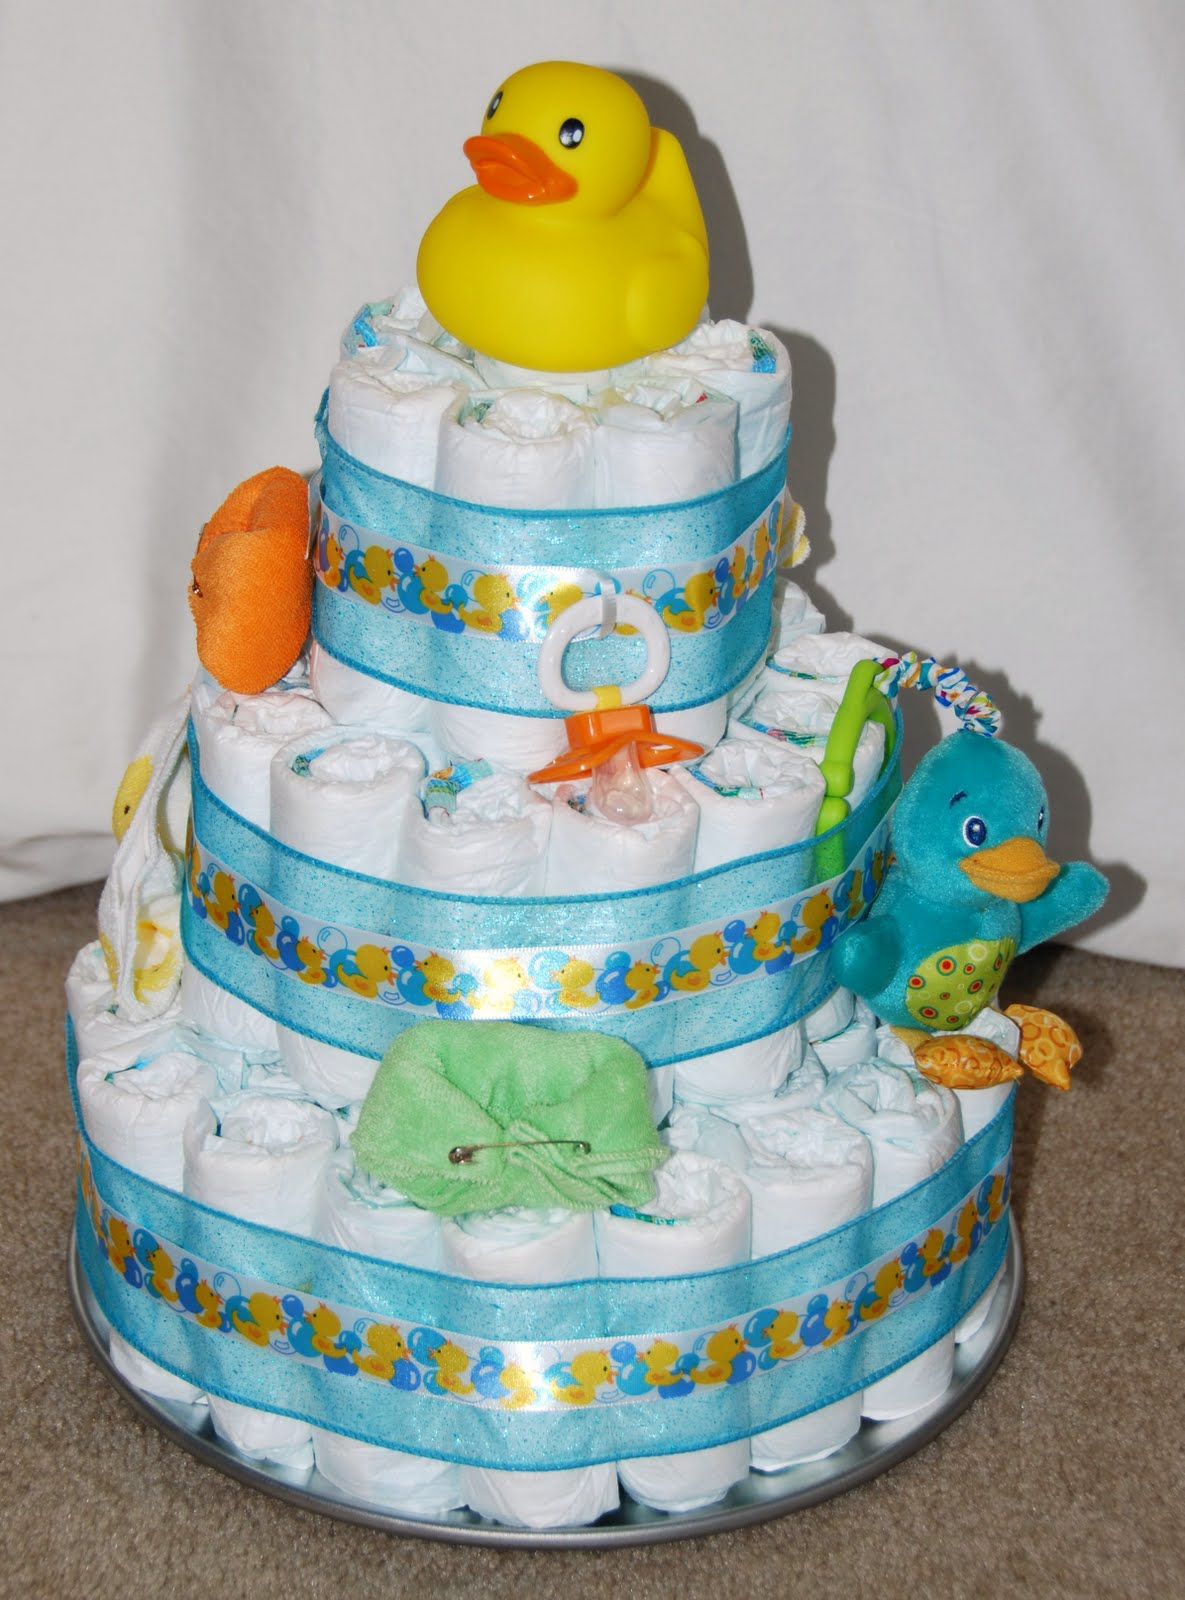 All Things Crafty!: Diaper Cake!